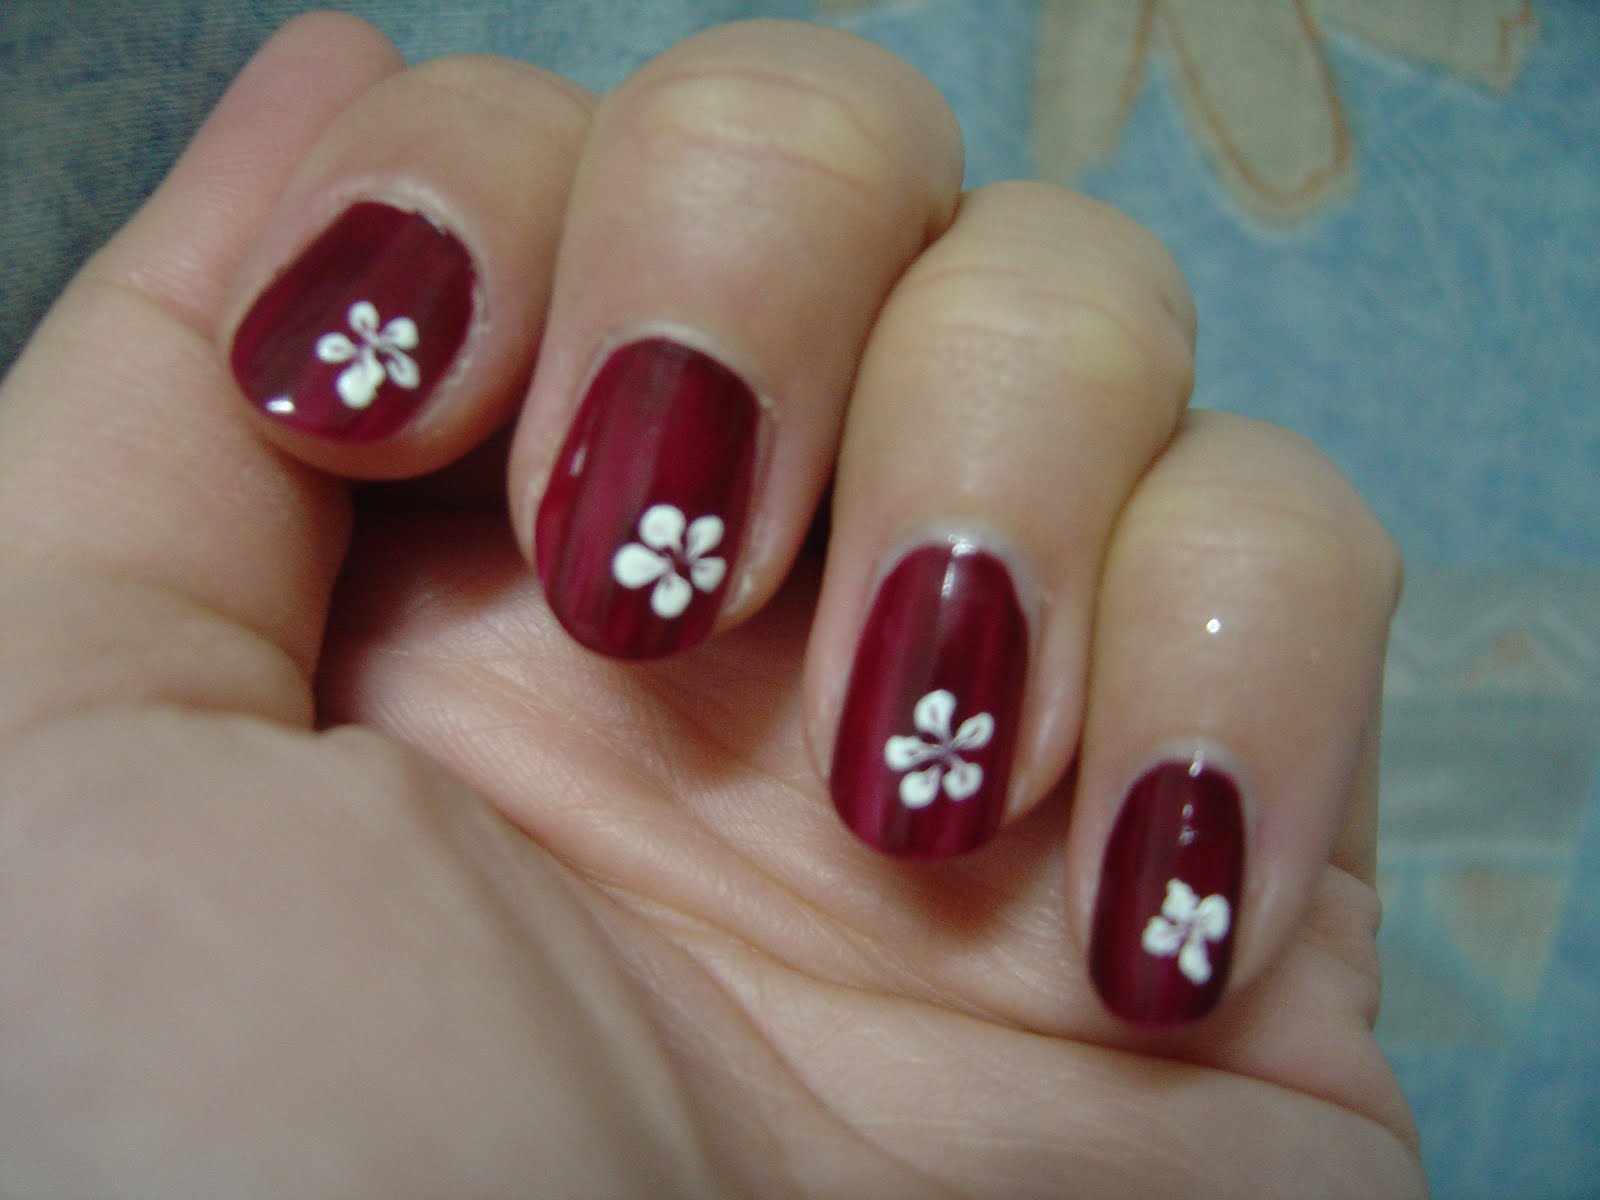 home depot picture flower nail designs. Black Bedroom Furniture Sets. Home Design Ideas